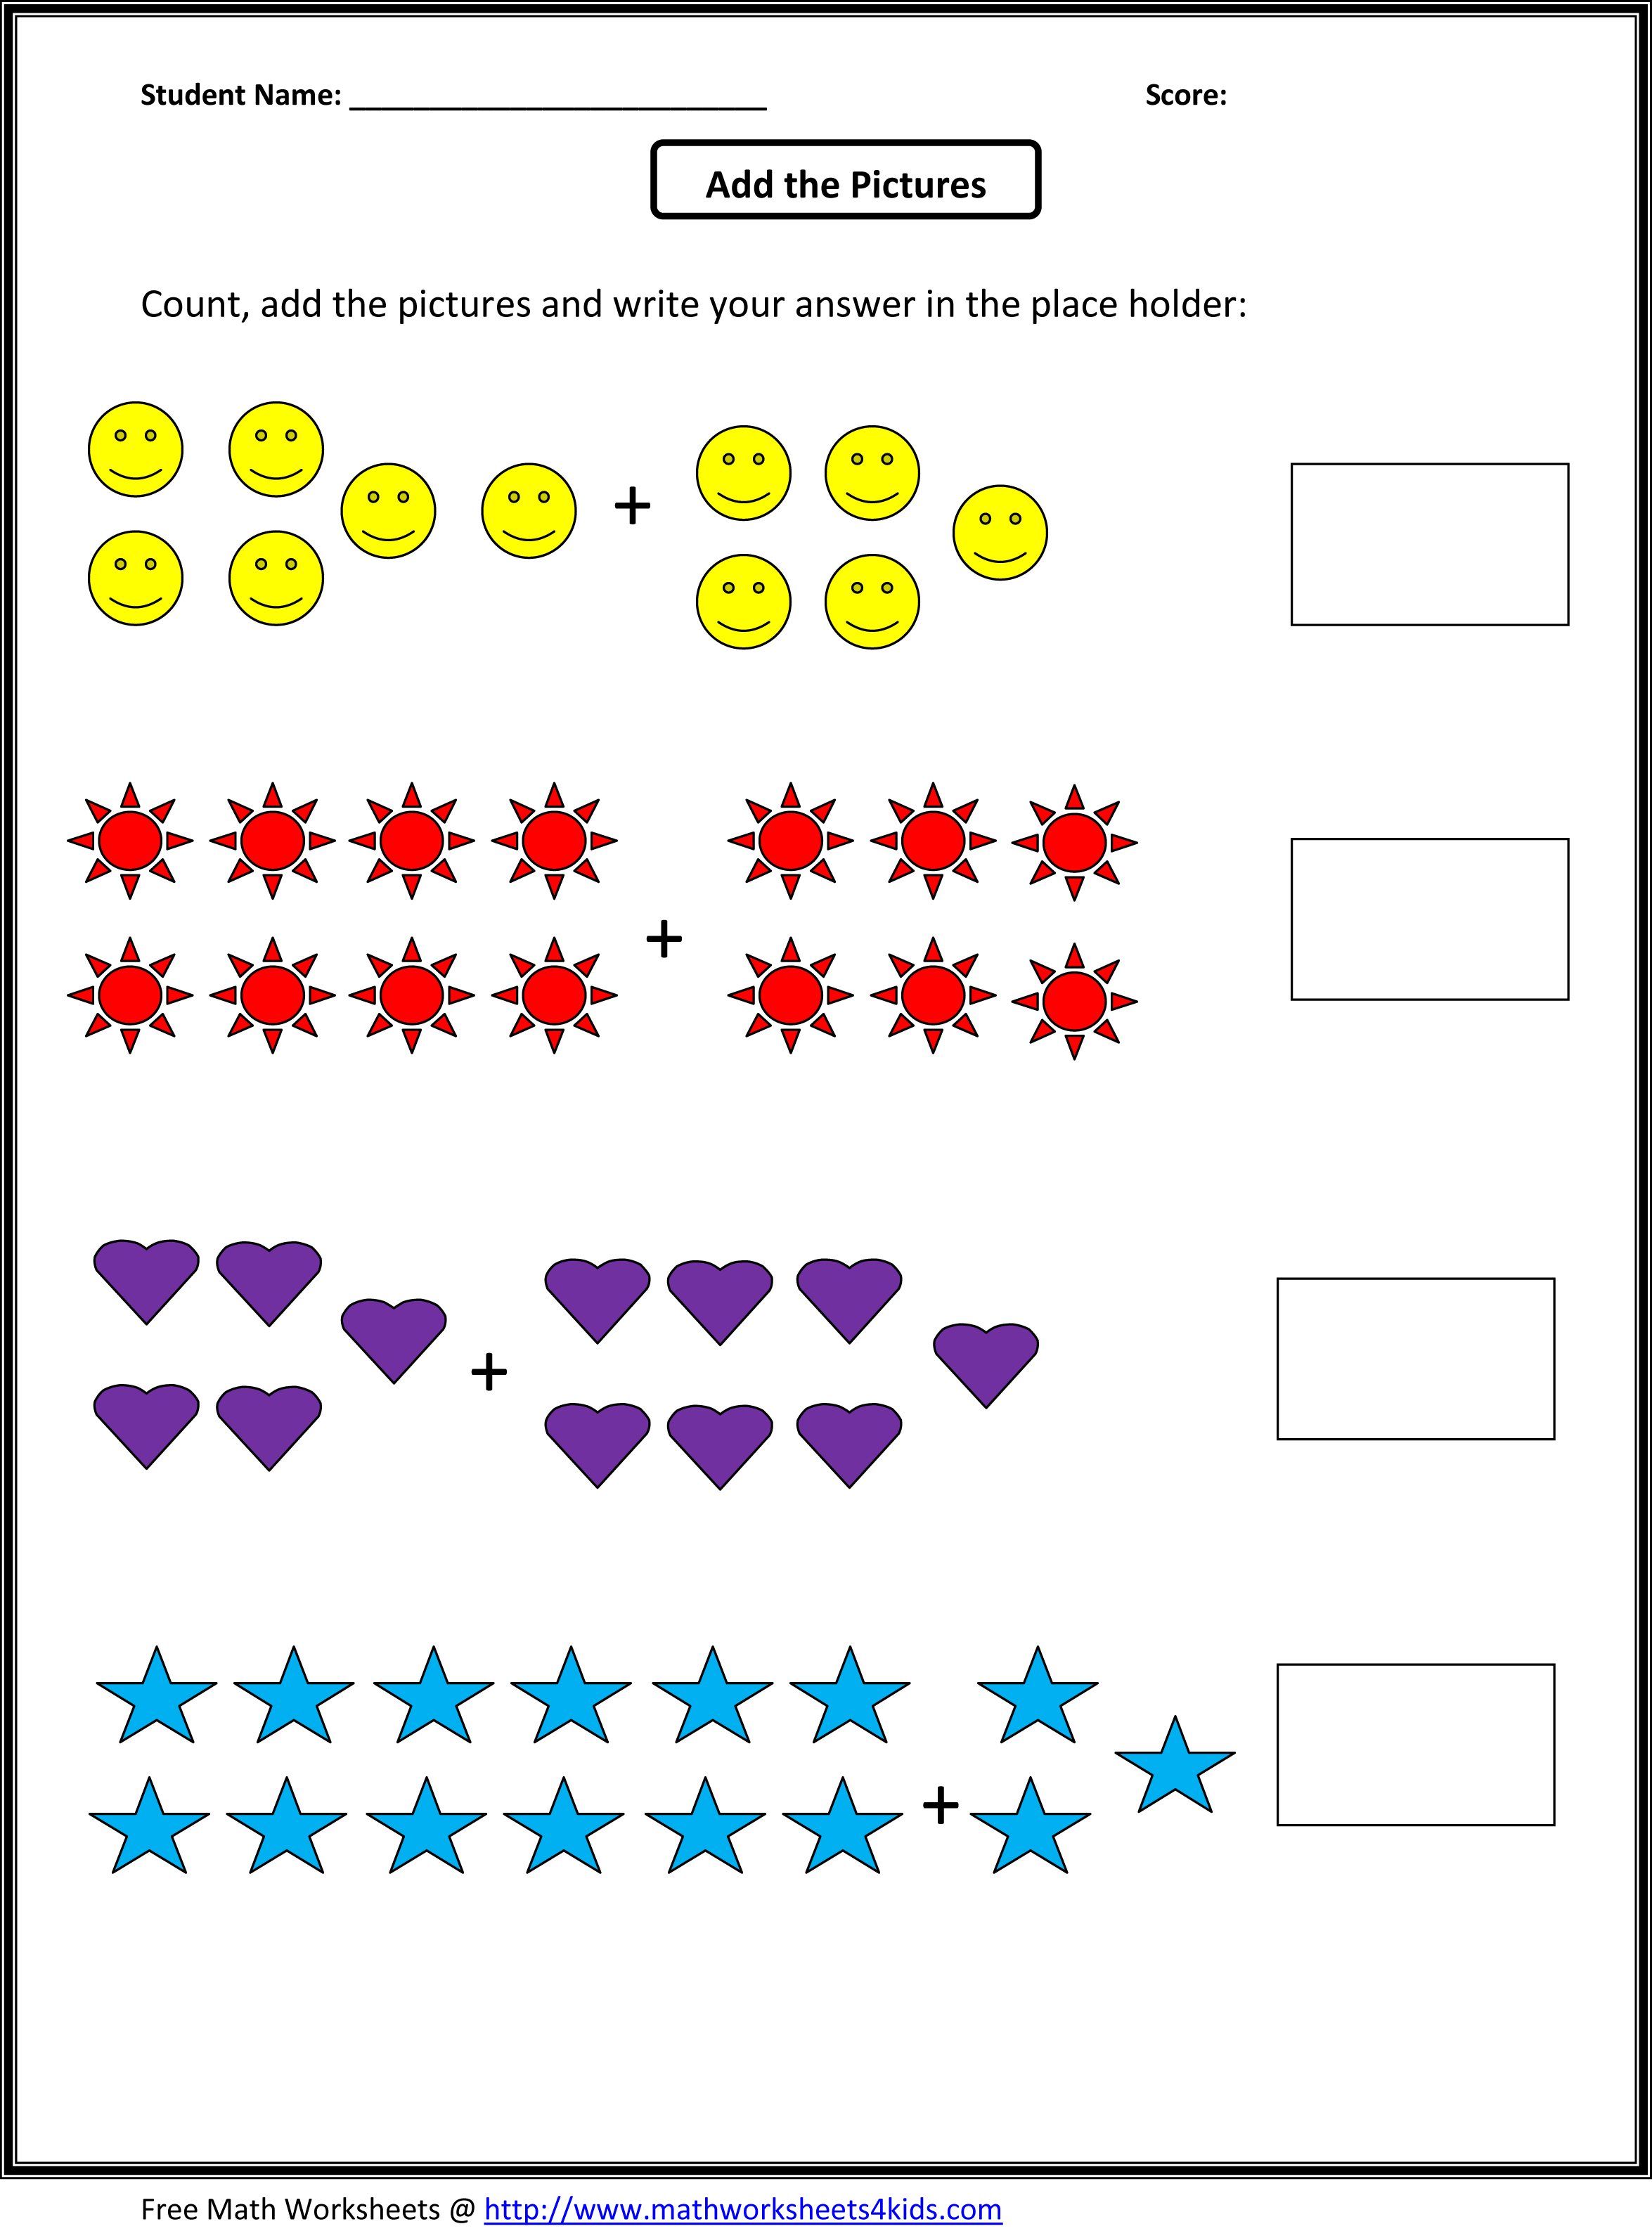 Proatmealus  Wonderful Grade  Maths Worksheet  Reocurent With Likable Math Worksheets For St Grade Free  Reocurent With Delightful High School Geometry Proofs Worksheets Also Antonyms Worksheets Th Grade In Addition Possessive S Worksheet And Managing Finances Worksheet As Well As Free Math Worksheets Addition Additionally Like Terms Worksheets From Reocurentcom With Proatmealus  Likable Grade  Maths Worksheet  Reocurent With Delightful Math Worksheets For St Grade Free  Reocurent And Wonderful High School Geometry Proofs Worksheets Also Antonyms Worksheets Th Grade In Addition Possessive S Worksheet From Reocurentcom